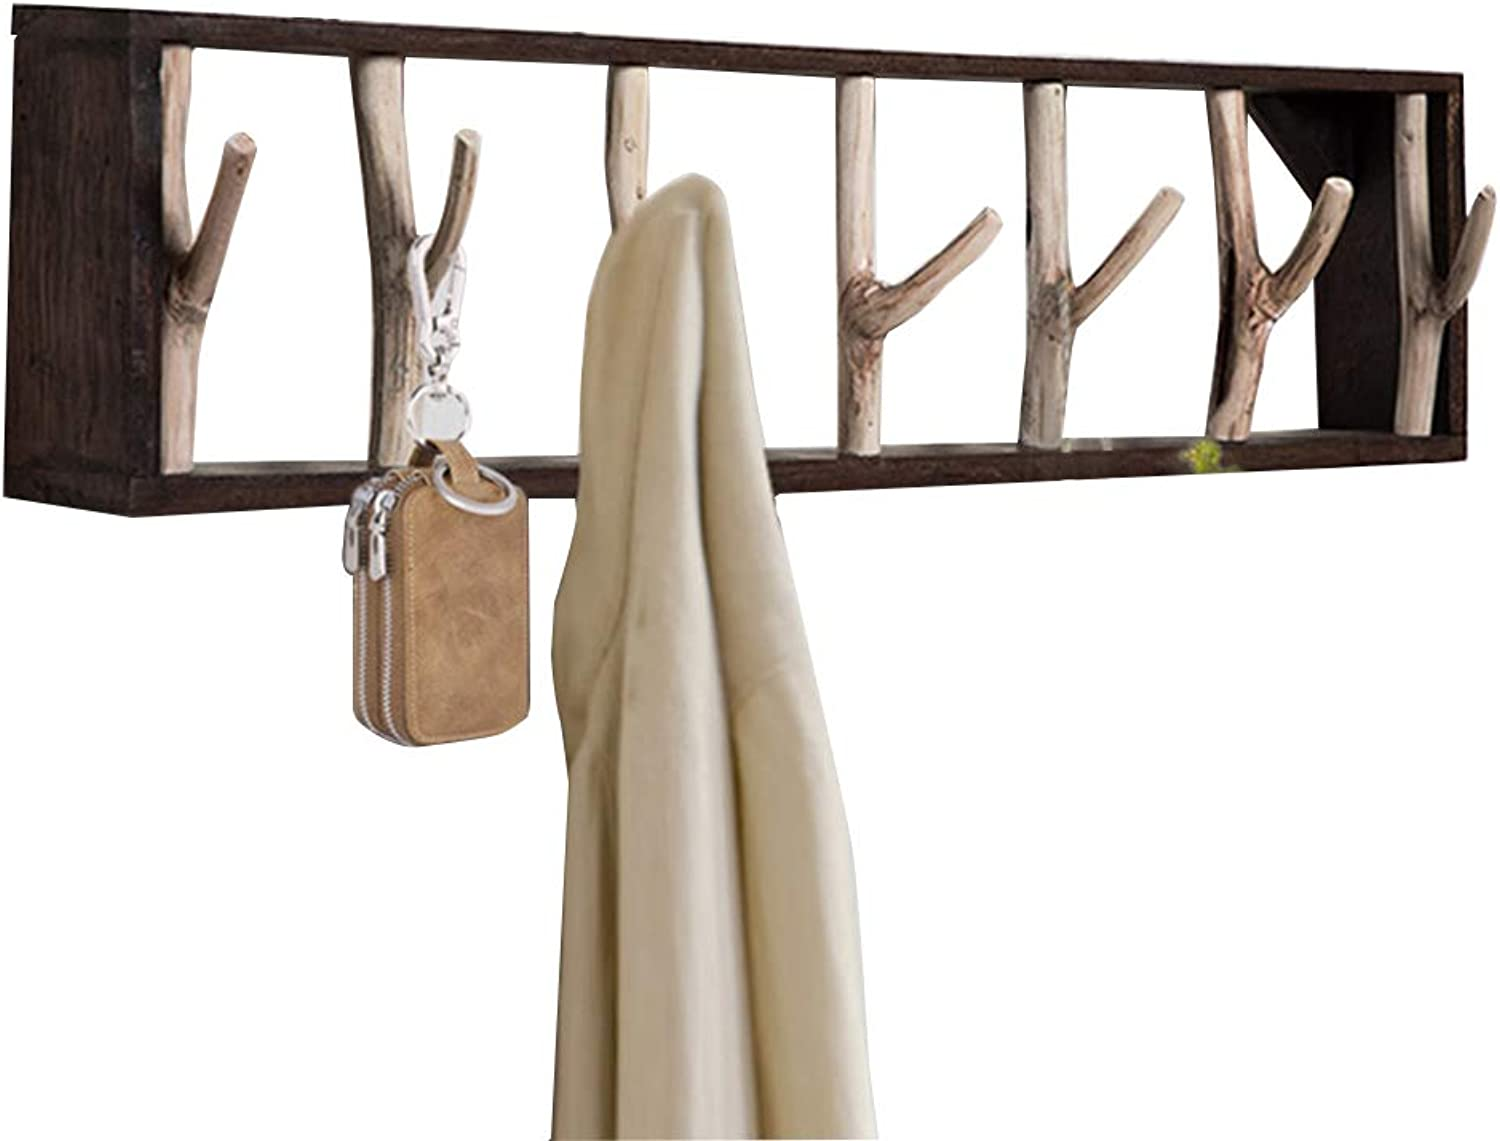 LAXF-Coat Hanger Stand Hangers Coat Rack Bamboo Clothes Hook Dorm Room Bedroom on The Wall Wall-Mounted Hook Hanger Multifunction The Shape of Tree Branches Brown